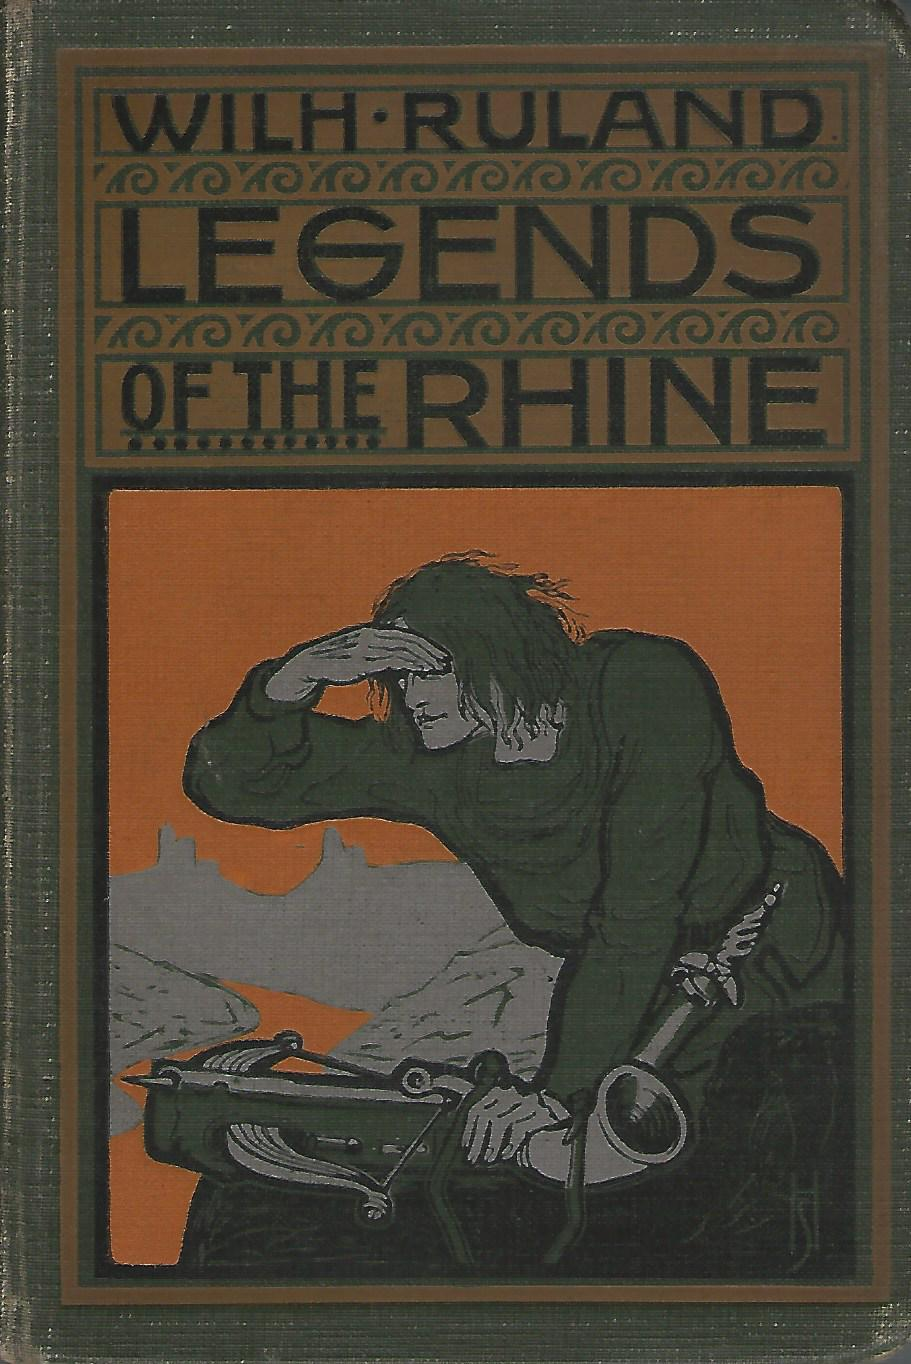 Legends of the Rhine.